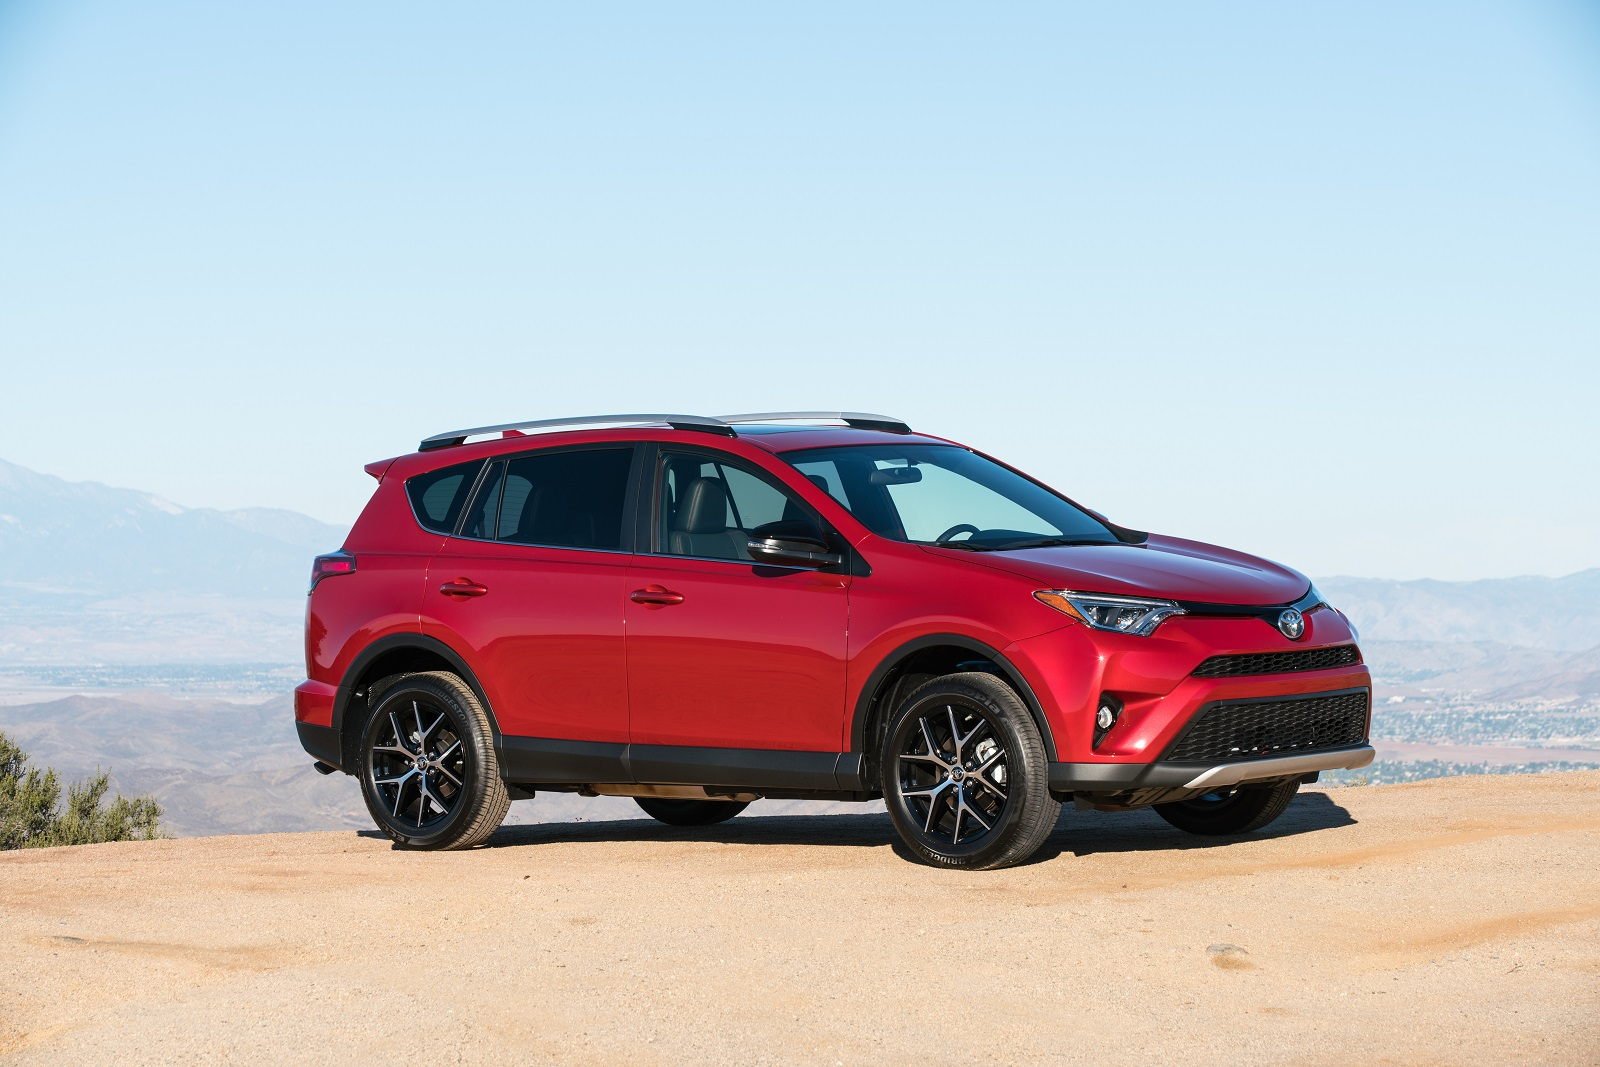 2016 Toyota RAV4 Review, Ratings, Specs, Prices, and Photos - The Car Connection